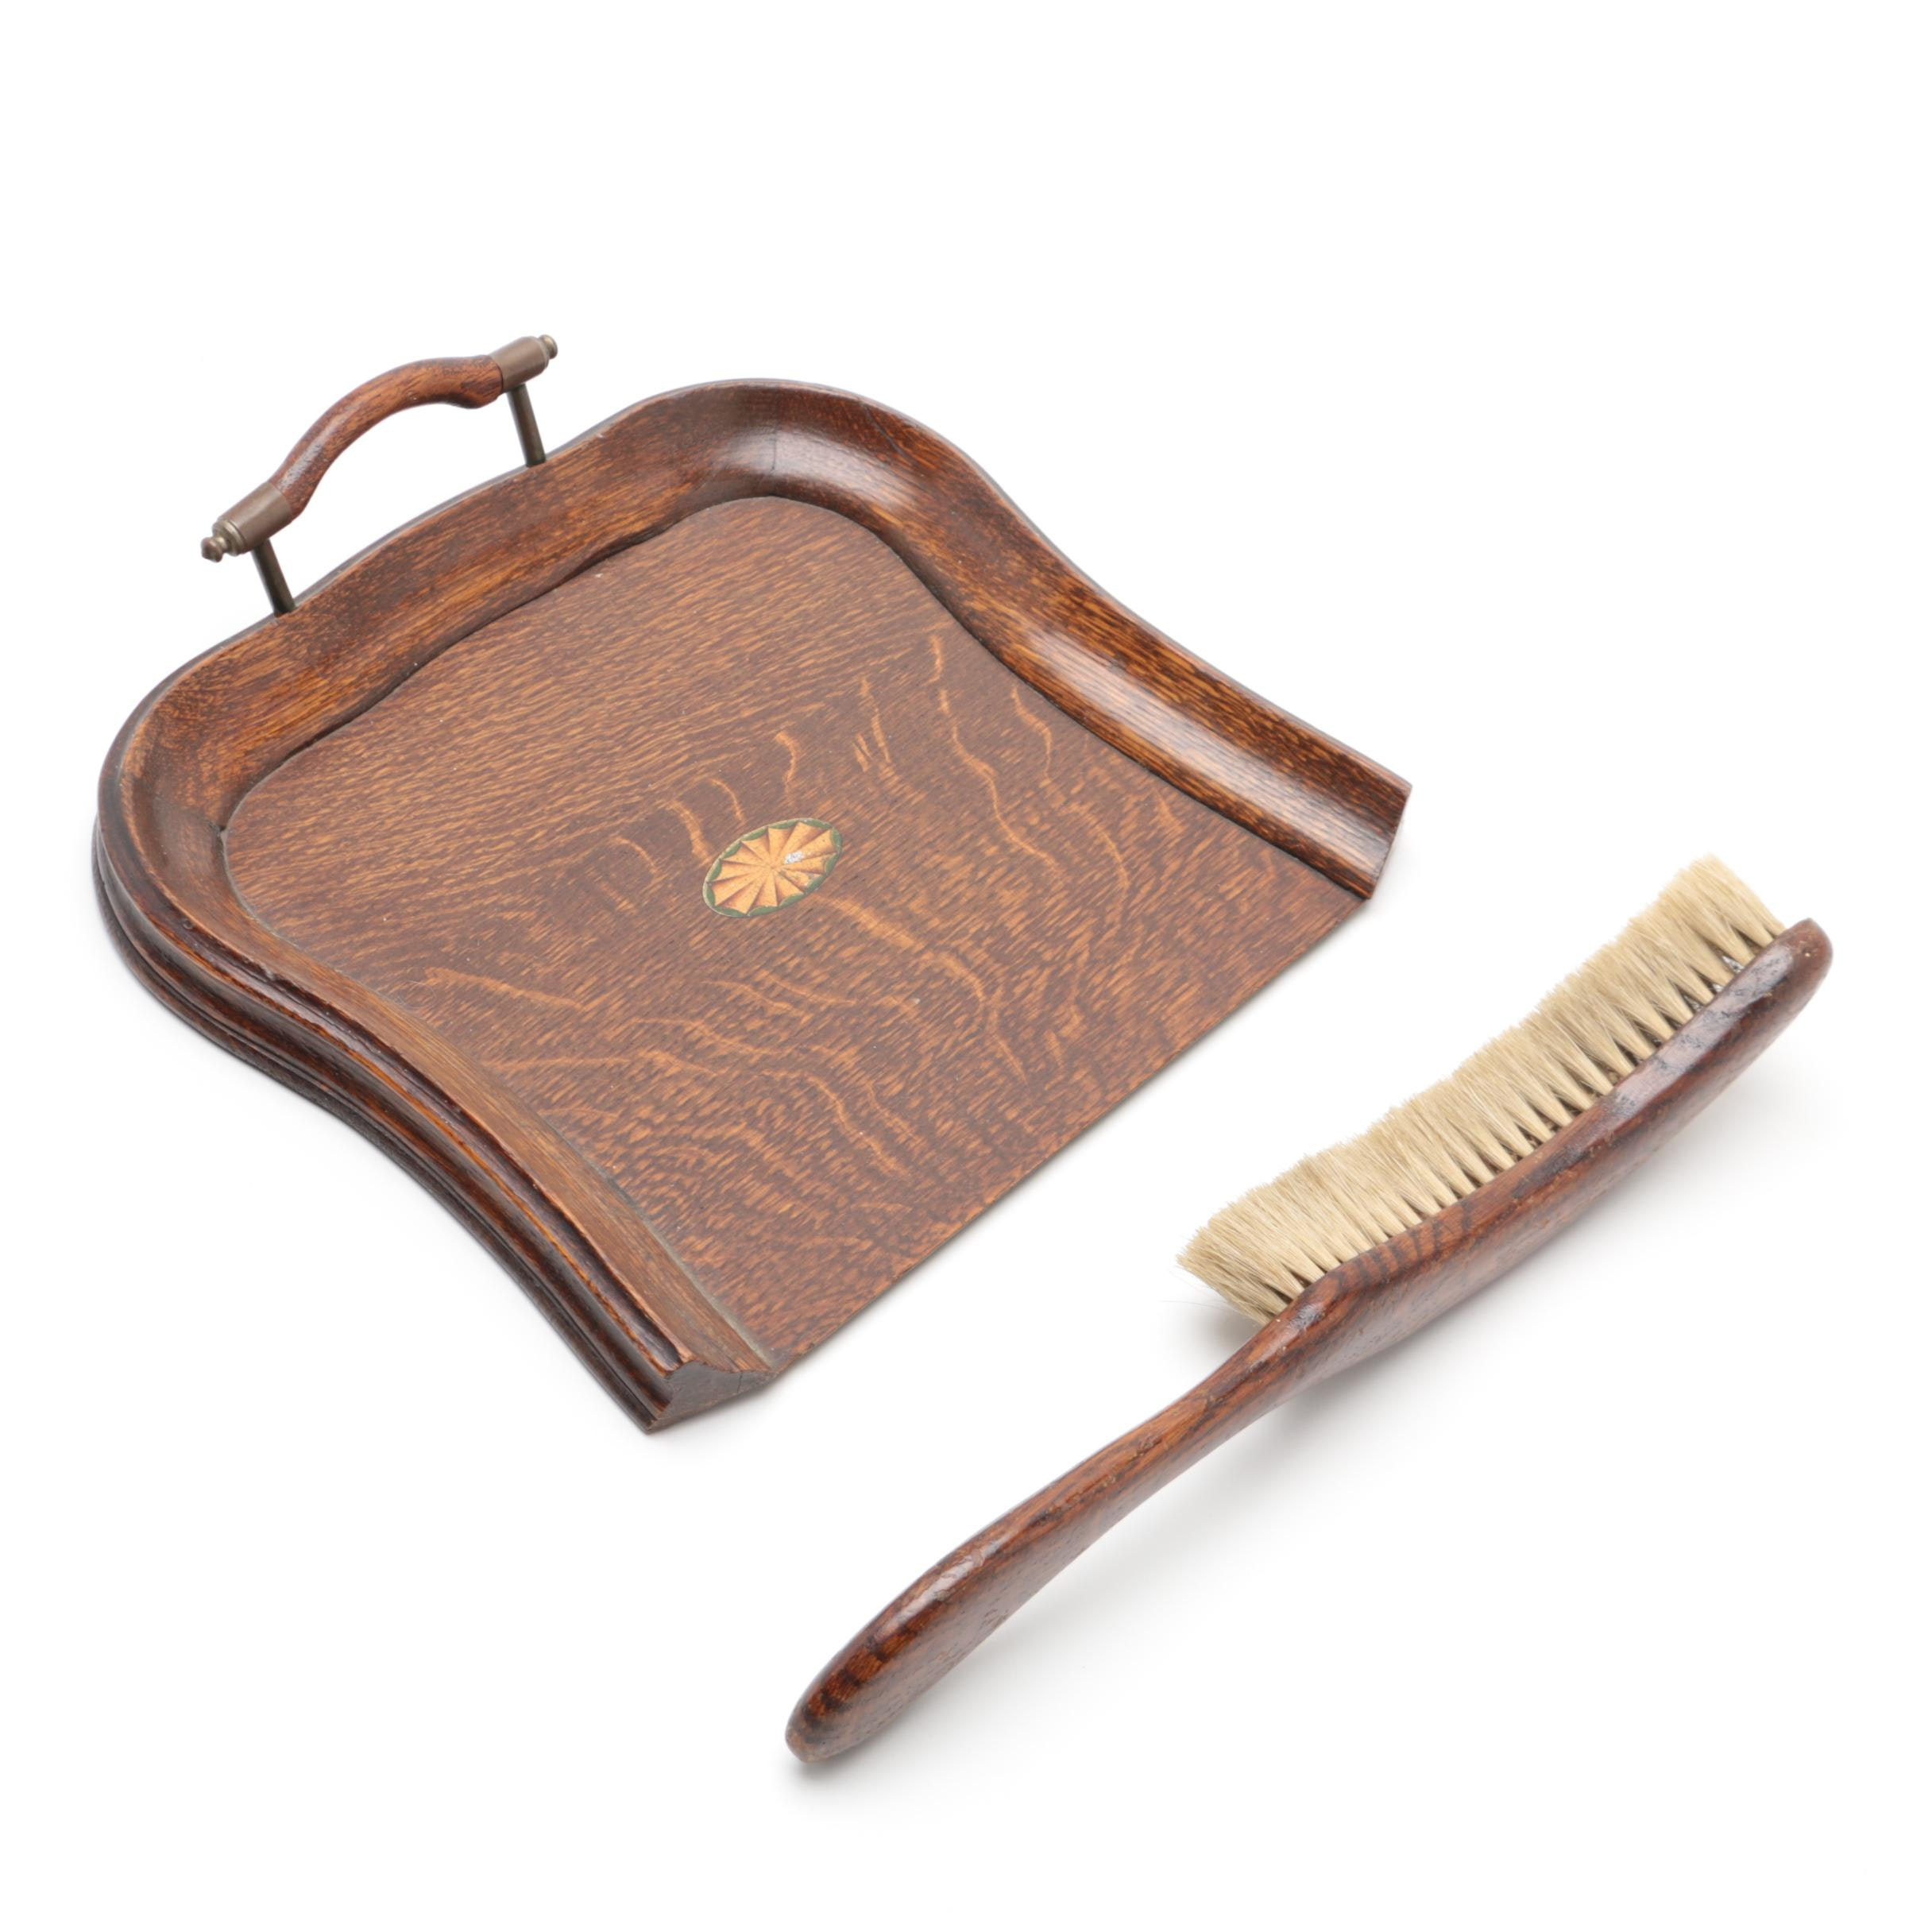 Late Victorian Oak Crumb Tray and Brush, Late 19th/Early 20th Century